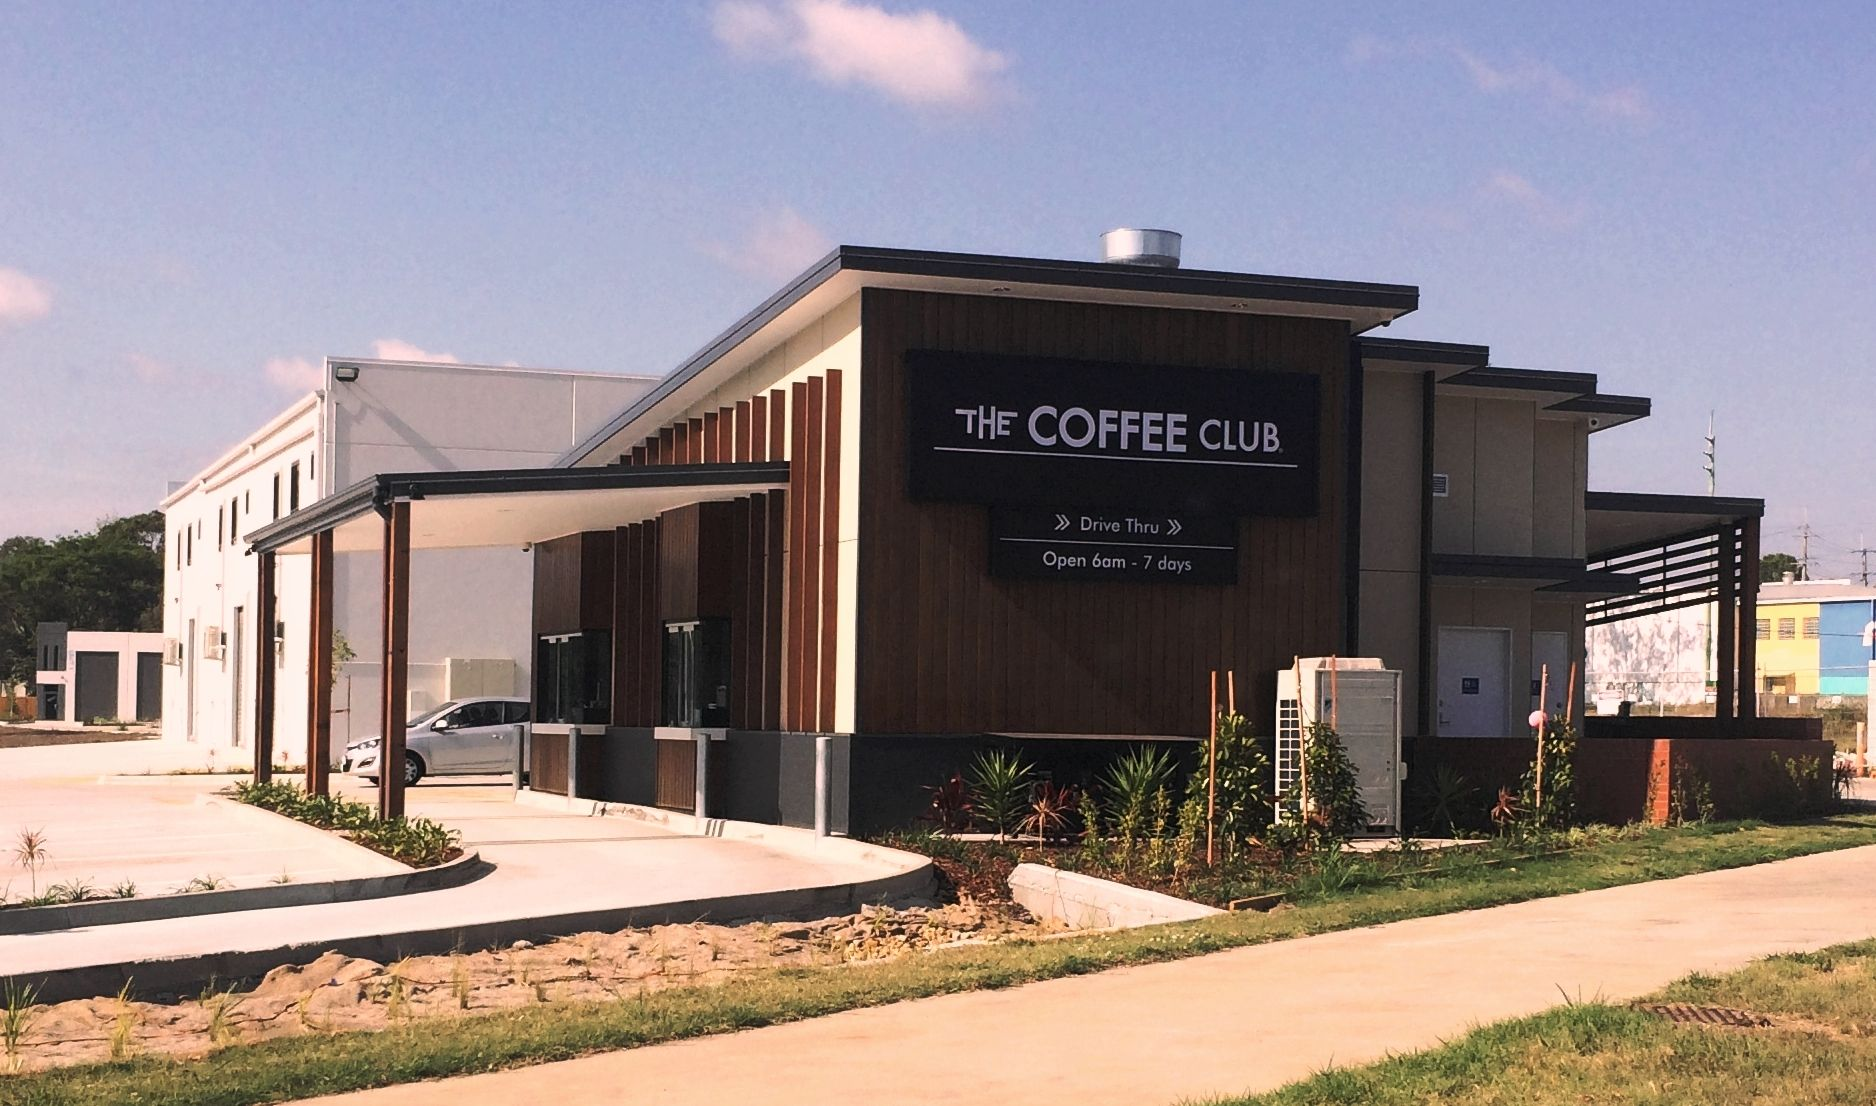 The Coffee Club Now Has Summit Innovations Drive Thru Technology Installed At Their Brand New Tingalpa Store On Th Coffee Shop Design Coffee House Coffee Store